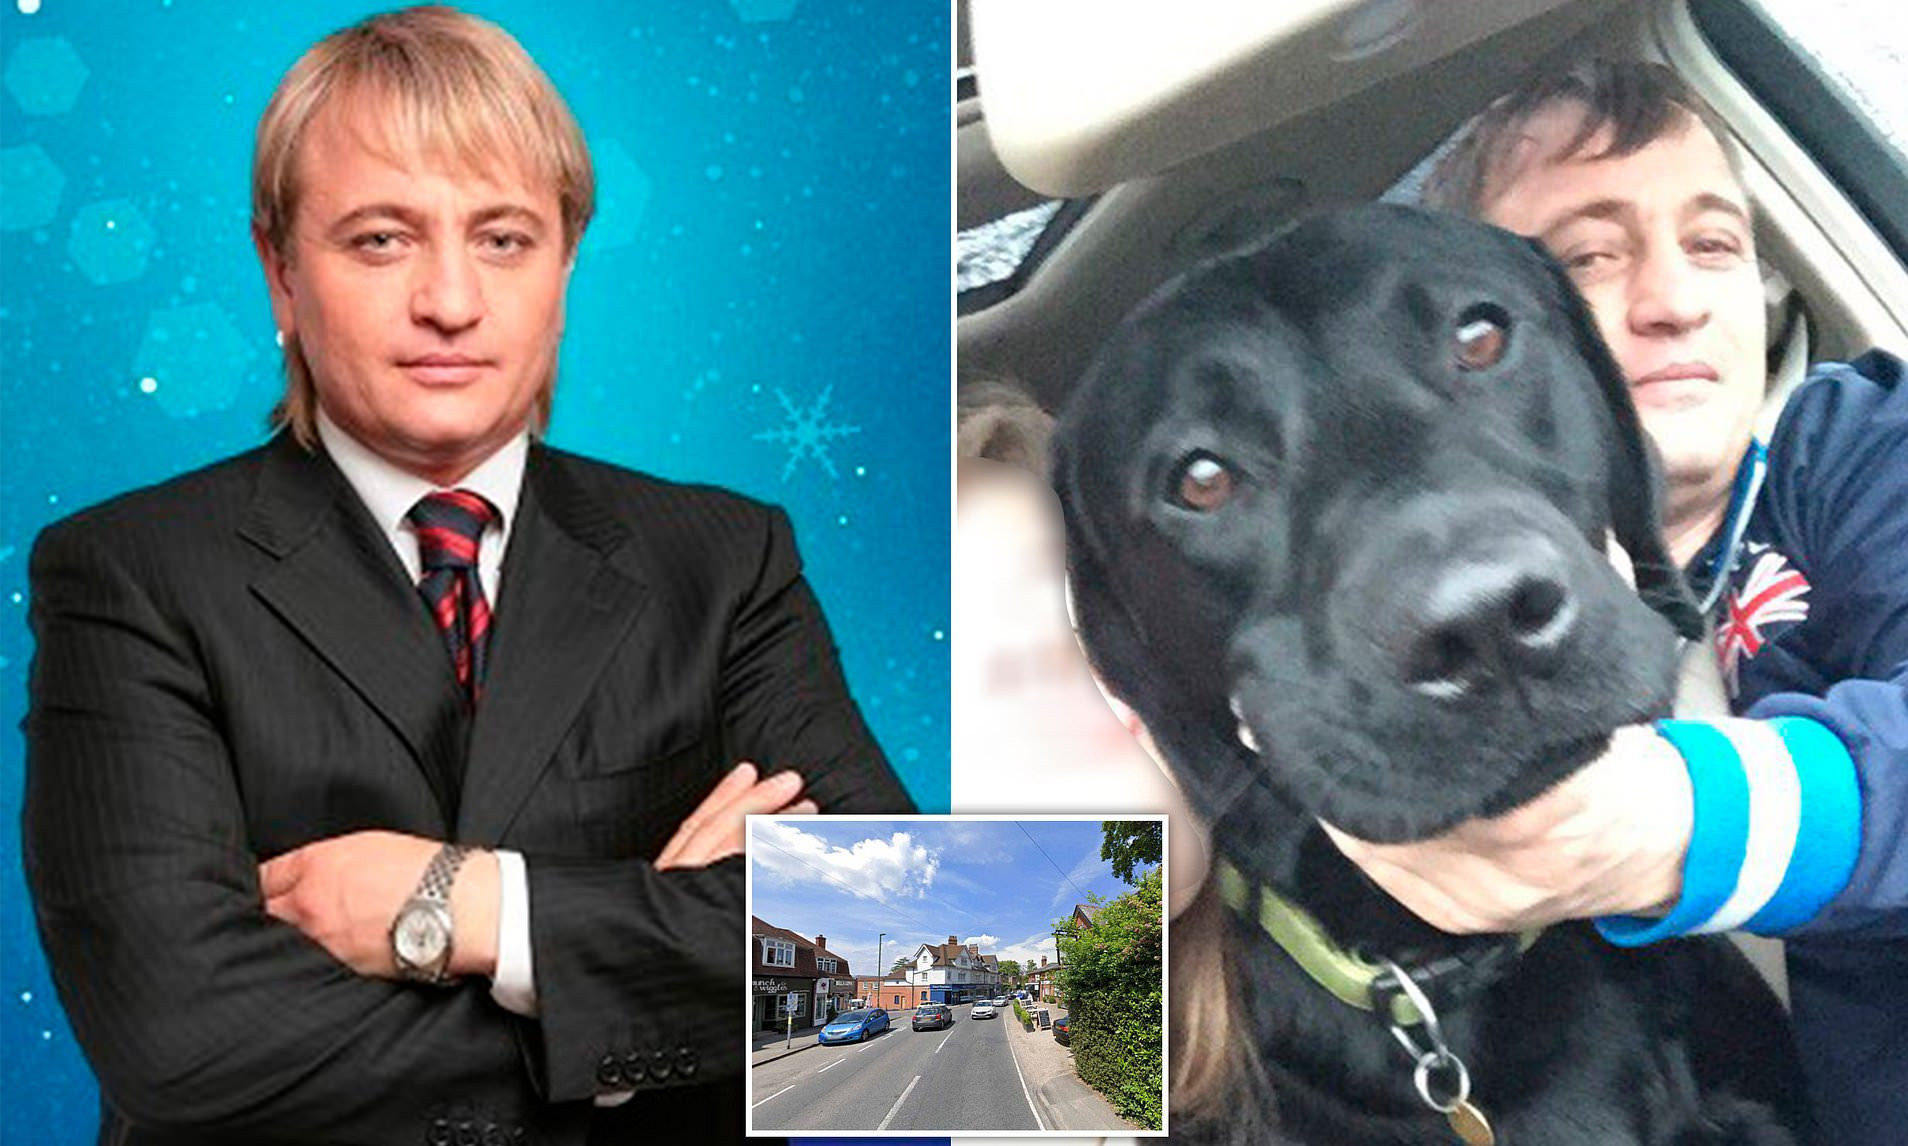 Russian billionaire tycoon Dmitry Obretetsky mysteriously killed in crash involving three cars while walking his dog in Surrey